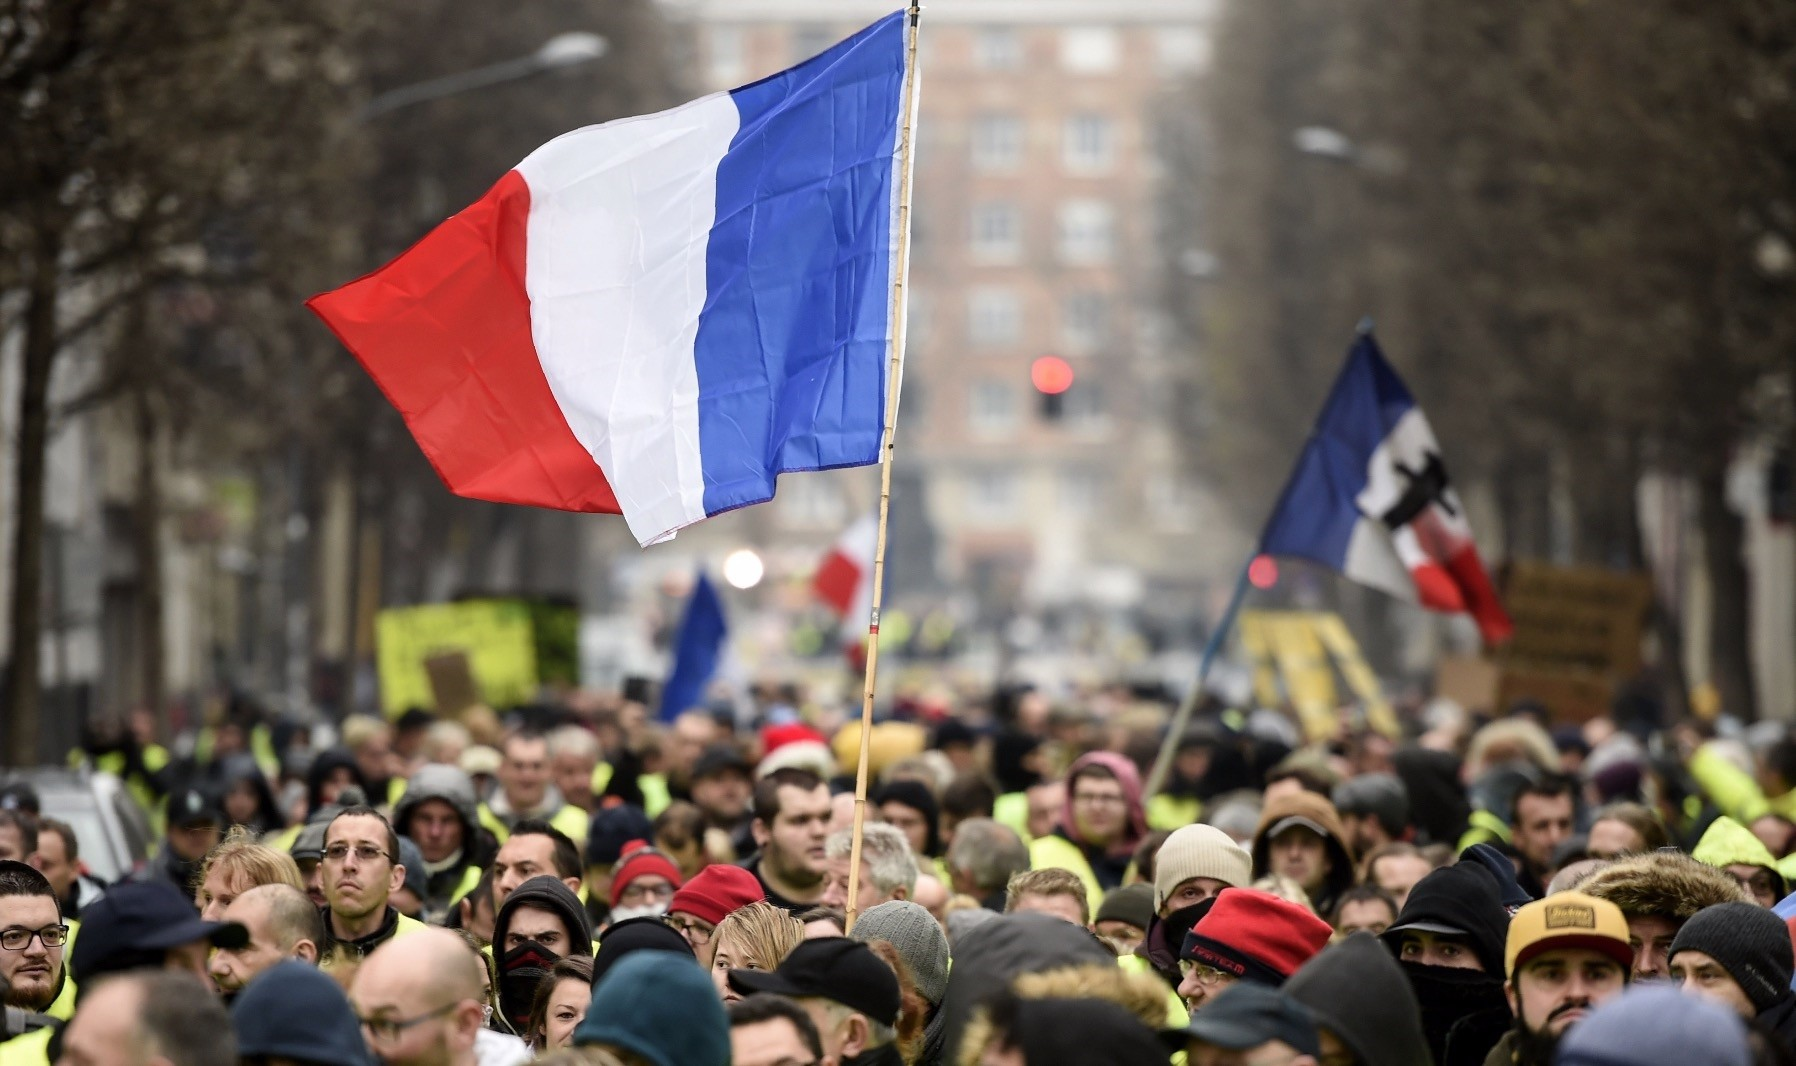 People hold up the French flag during a ,yellow vest, demonstration in the northern French city of Lille, Dec. 29.